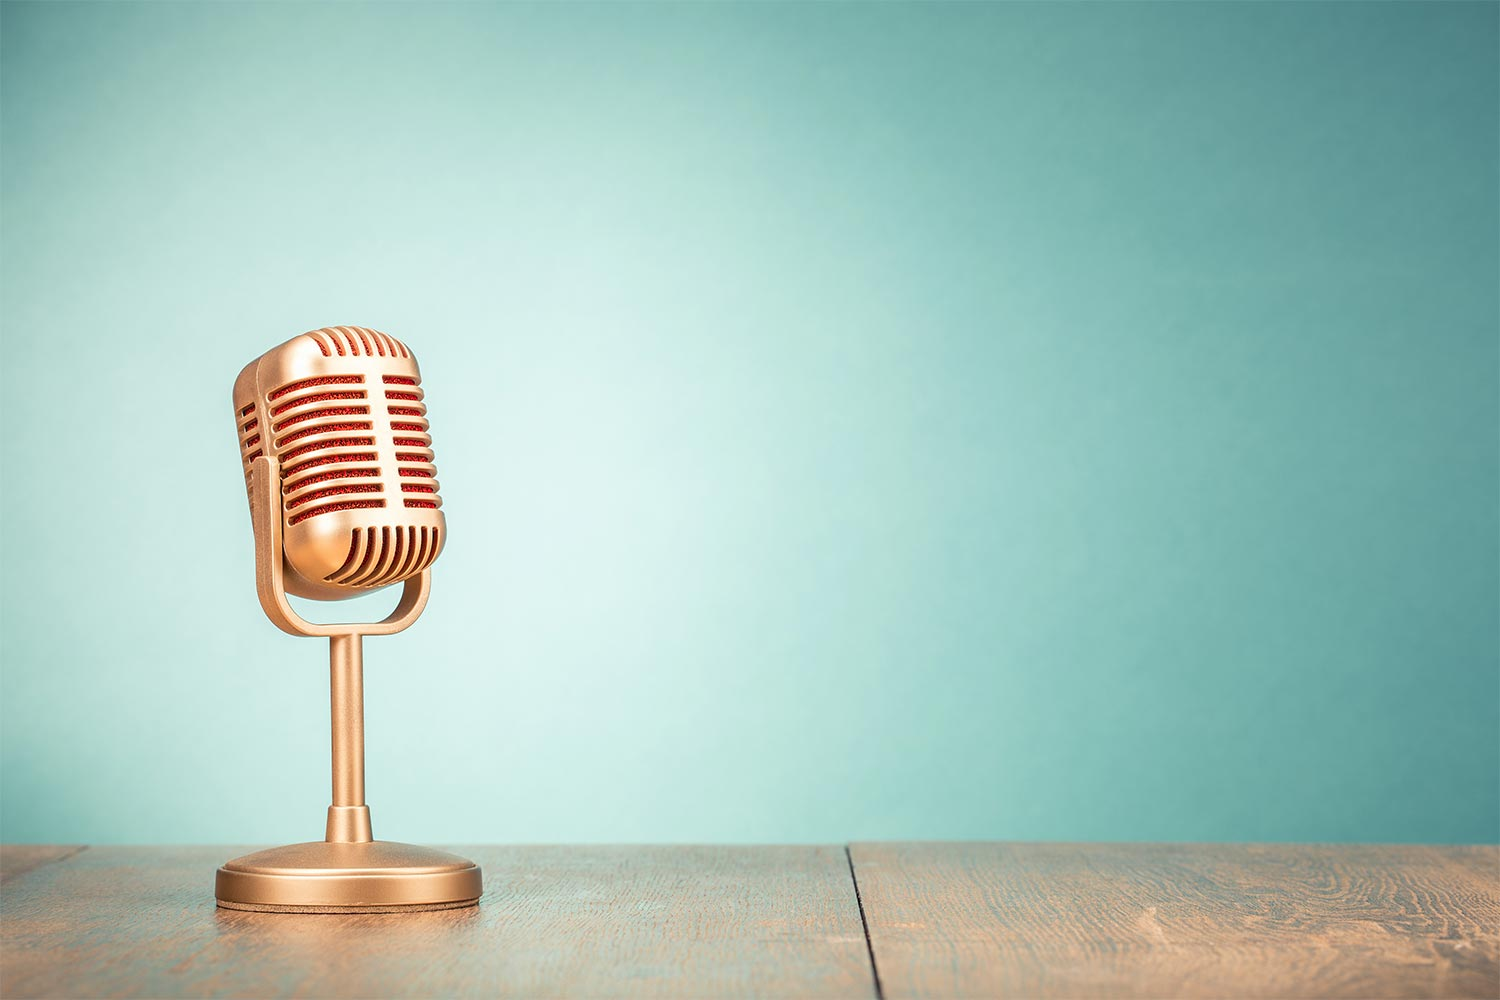 5 Ways To Get Press Without PR Or A Publicist